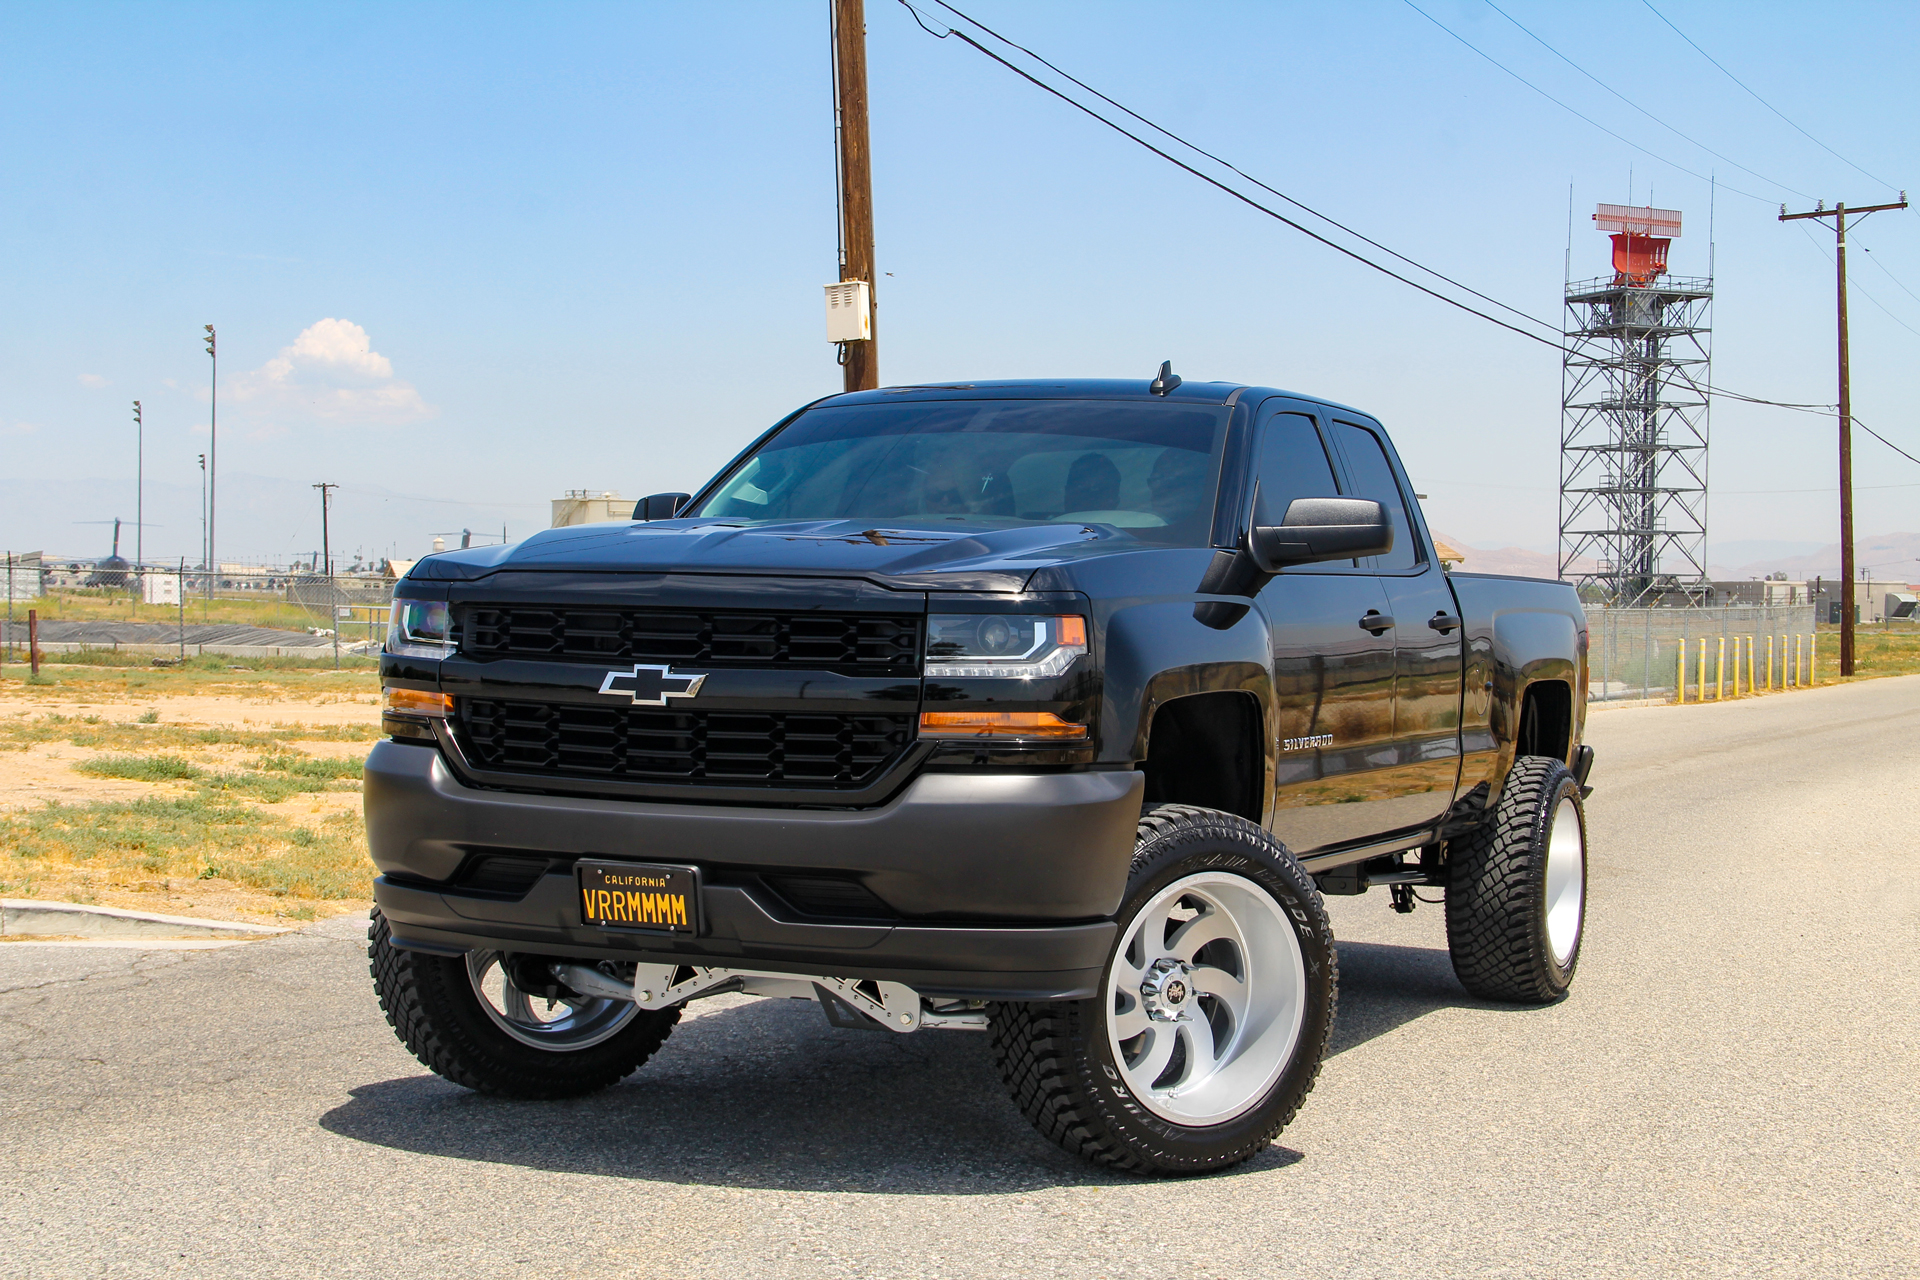 M07 Off-Road Monster Wheels on a Lifted Chevrolet Silverado